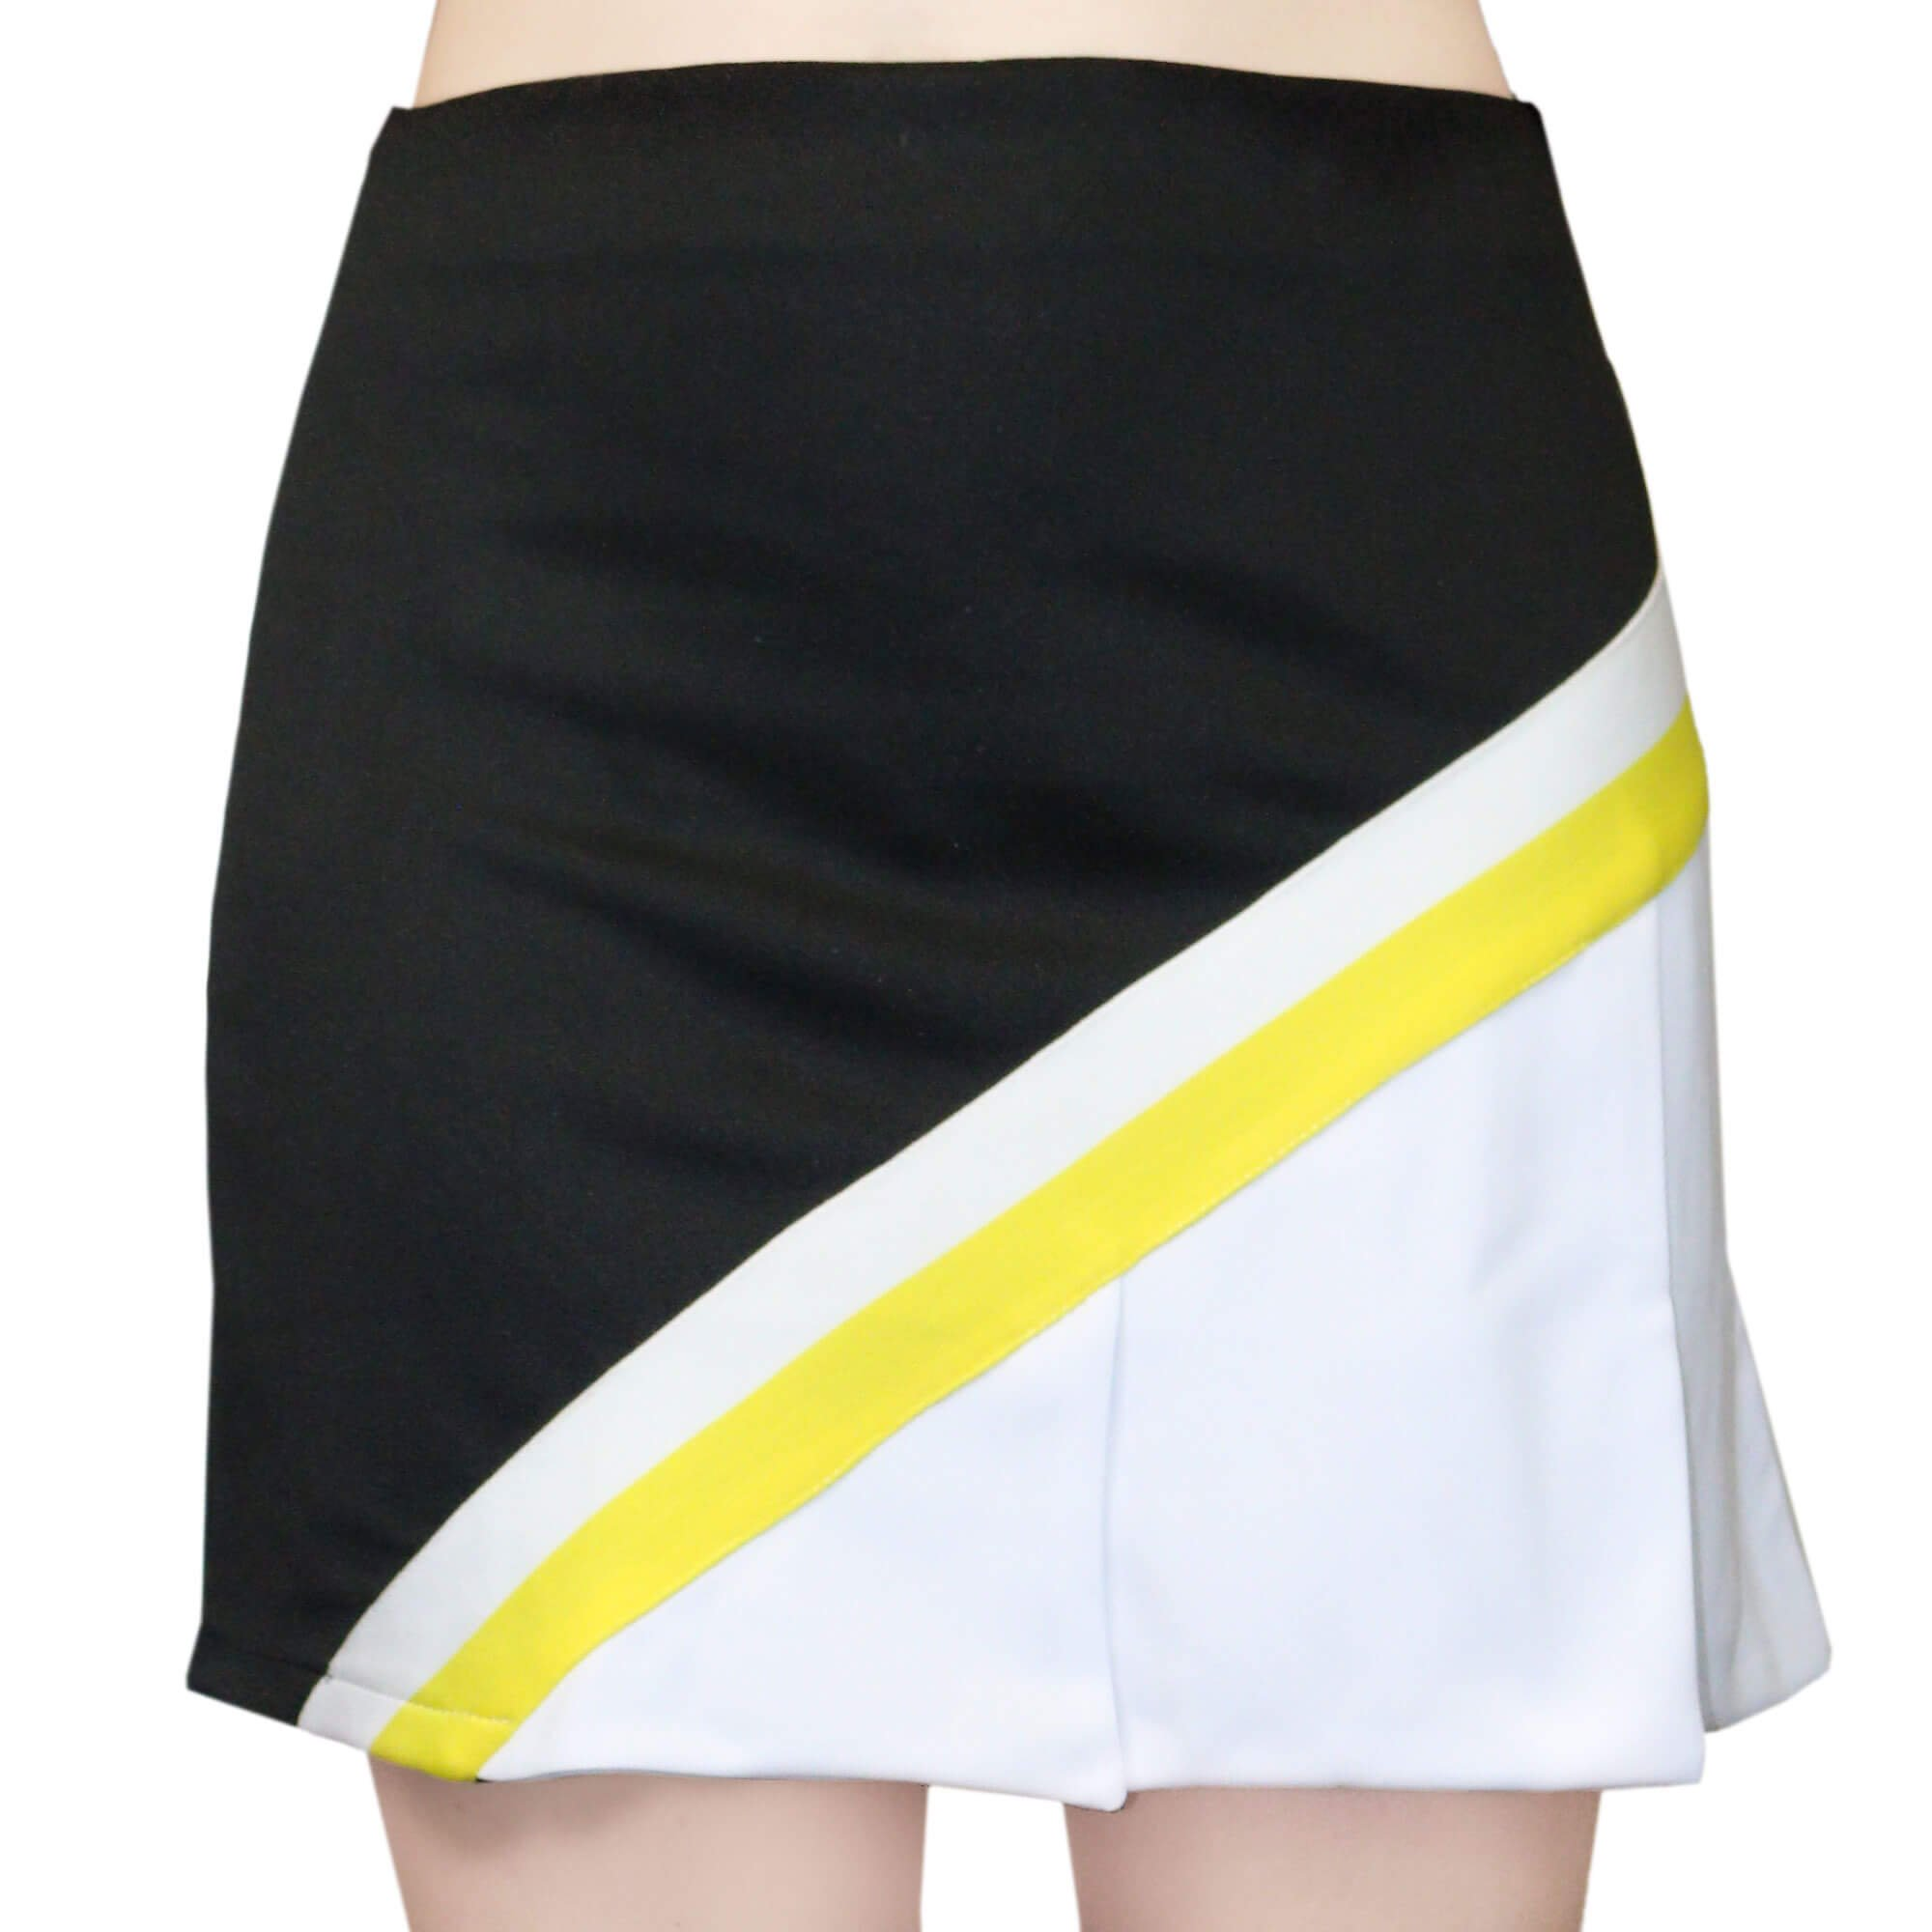 Danzcue Child A-Line Cheerleading Knit Pleat Skirt